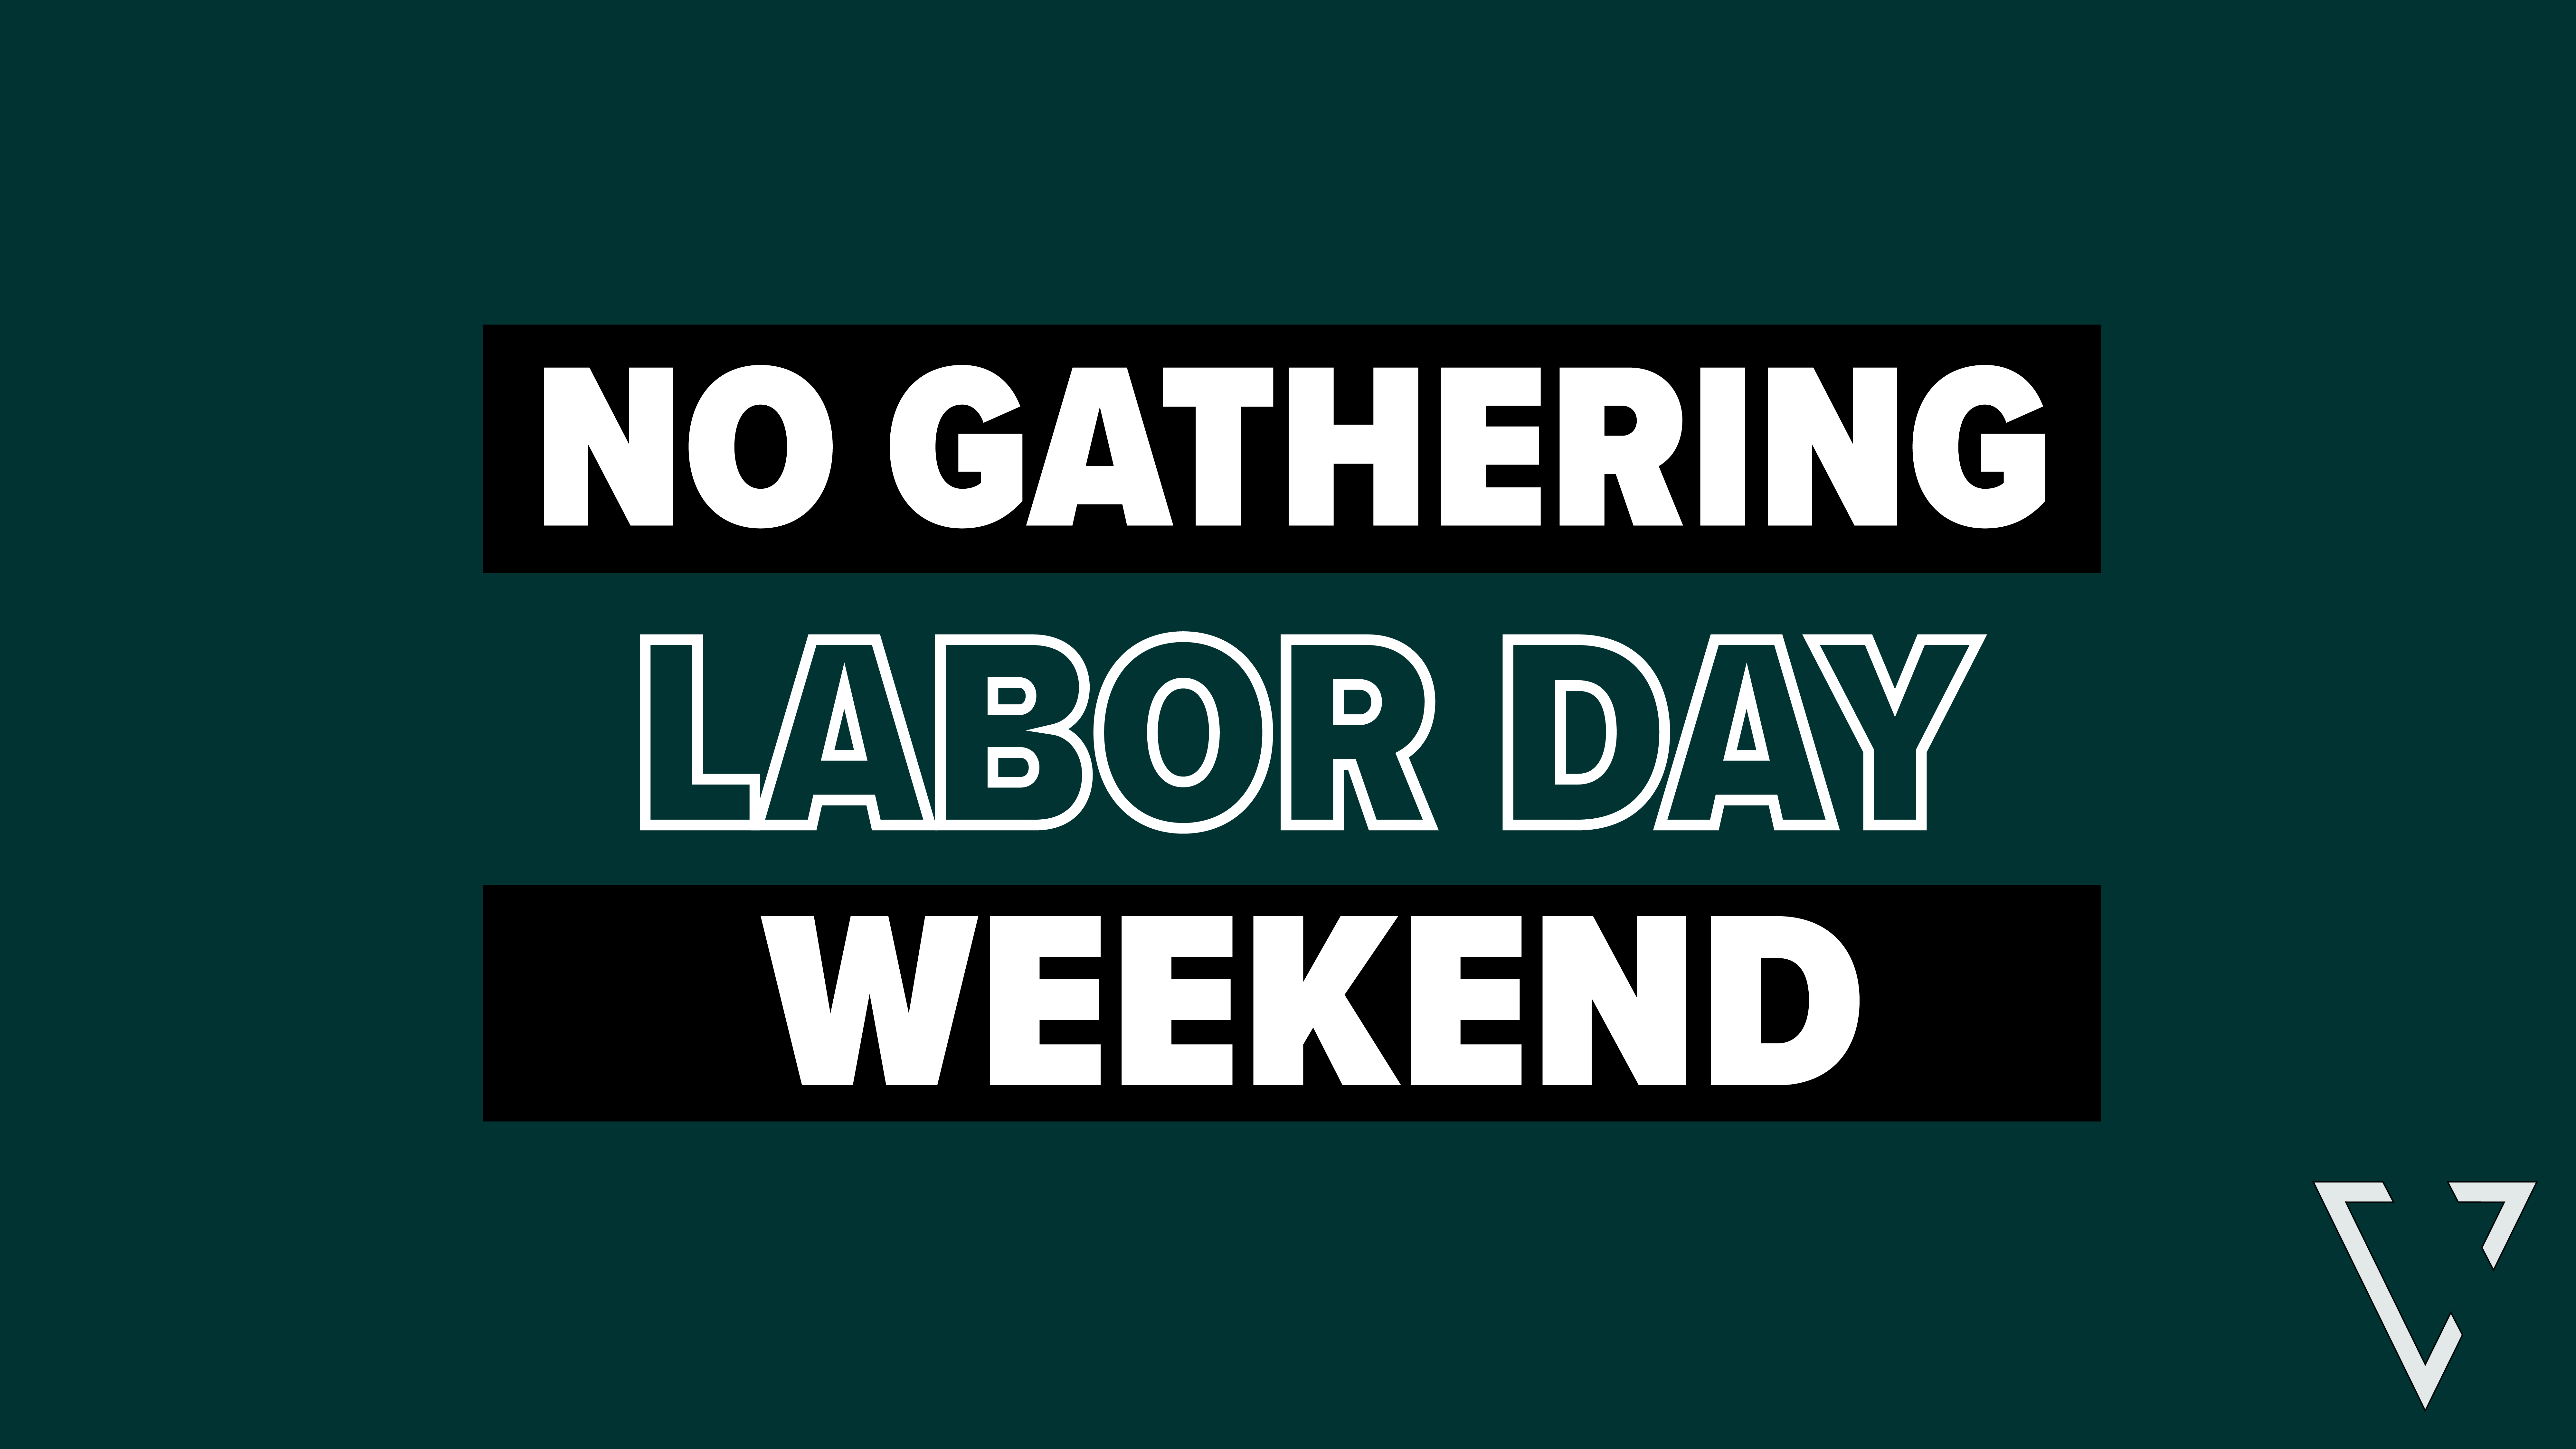 LaborDay image